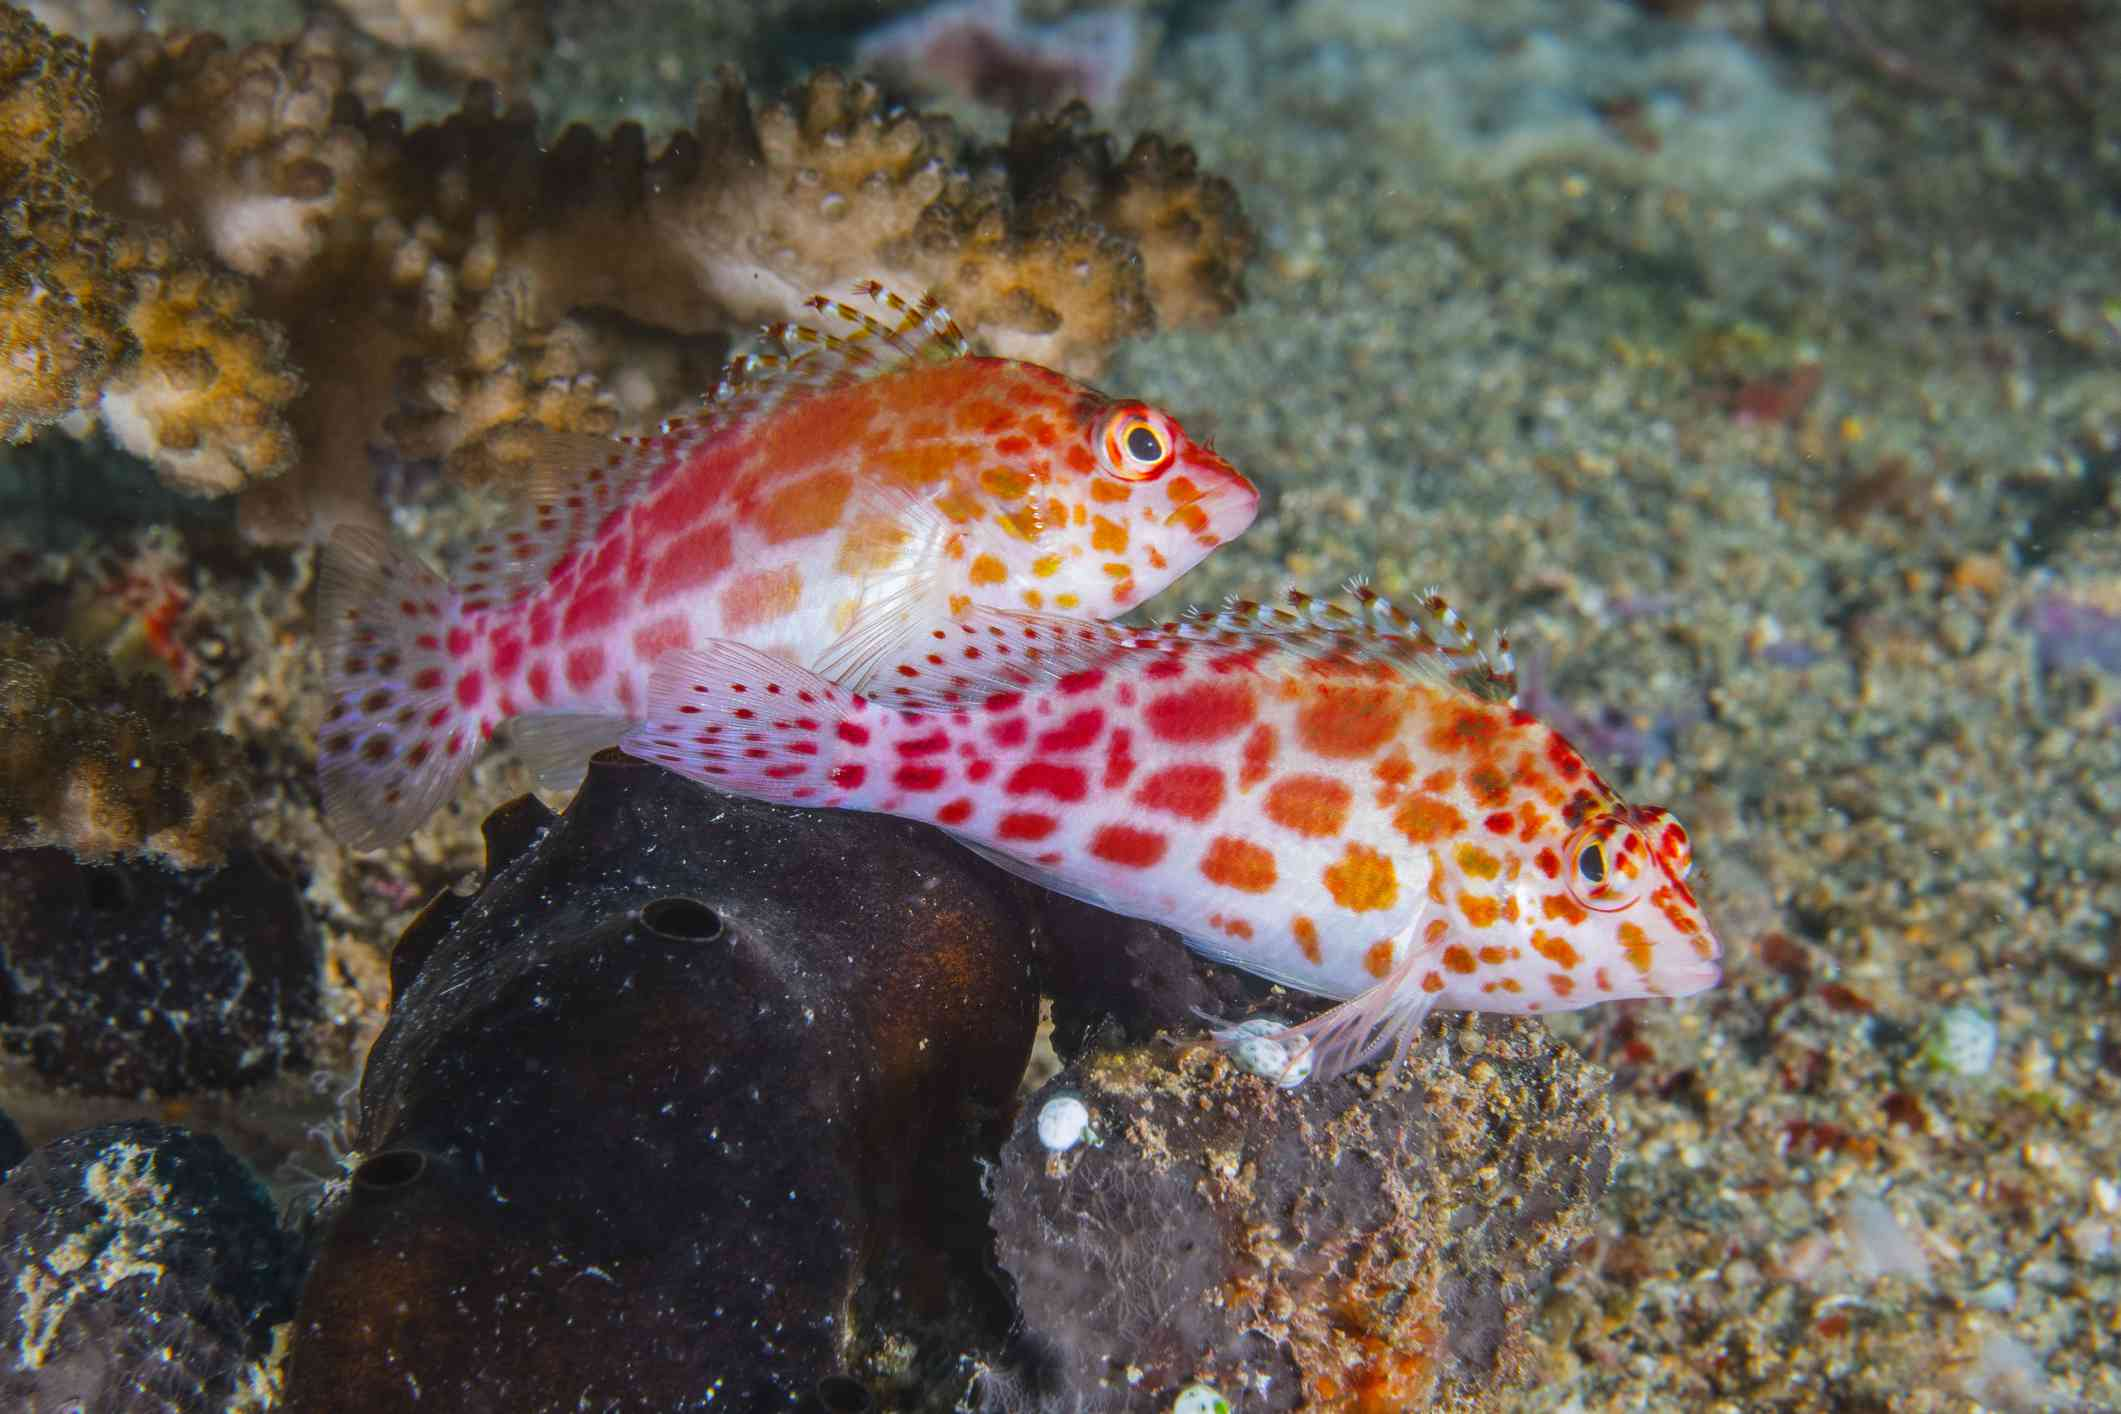 Two hawkfish with orange spots on a reef in the Maldives.